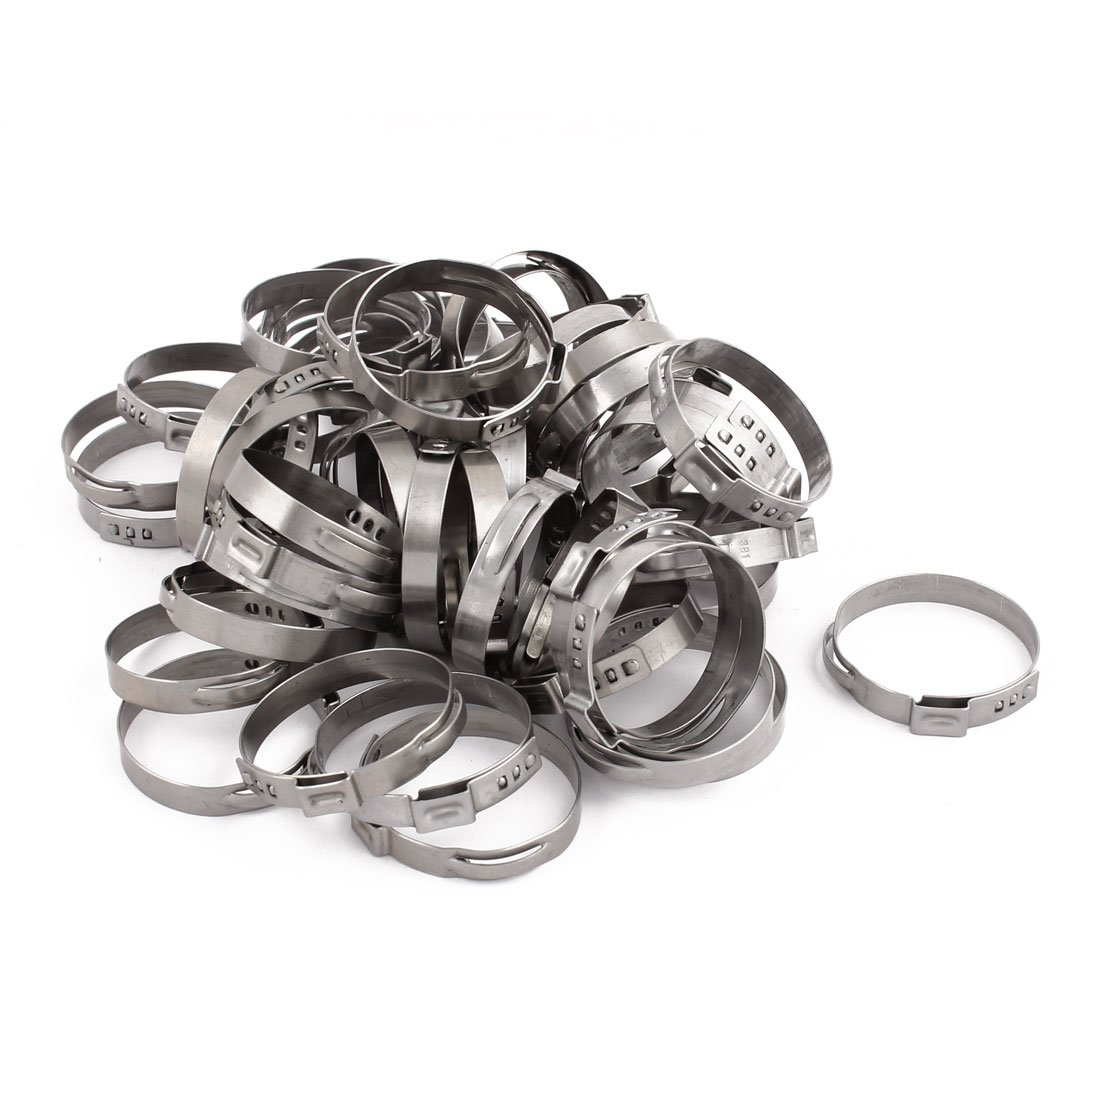 uxcell 34.9mm-38.1mm 304 Stainless Steel Adjustable Tube Hose Clamps Silver Tone 50pcs